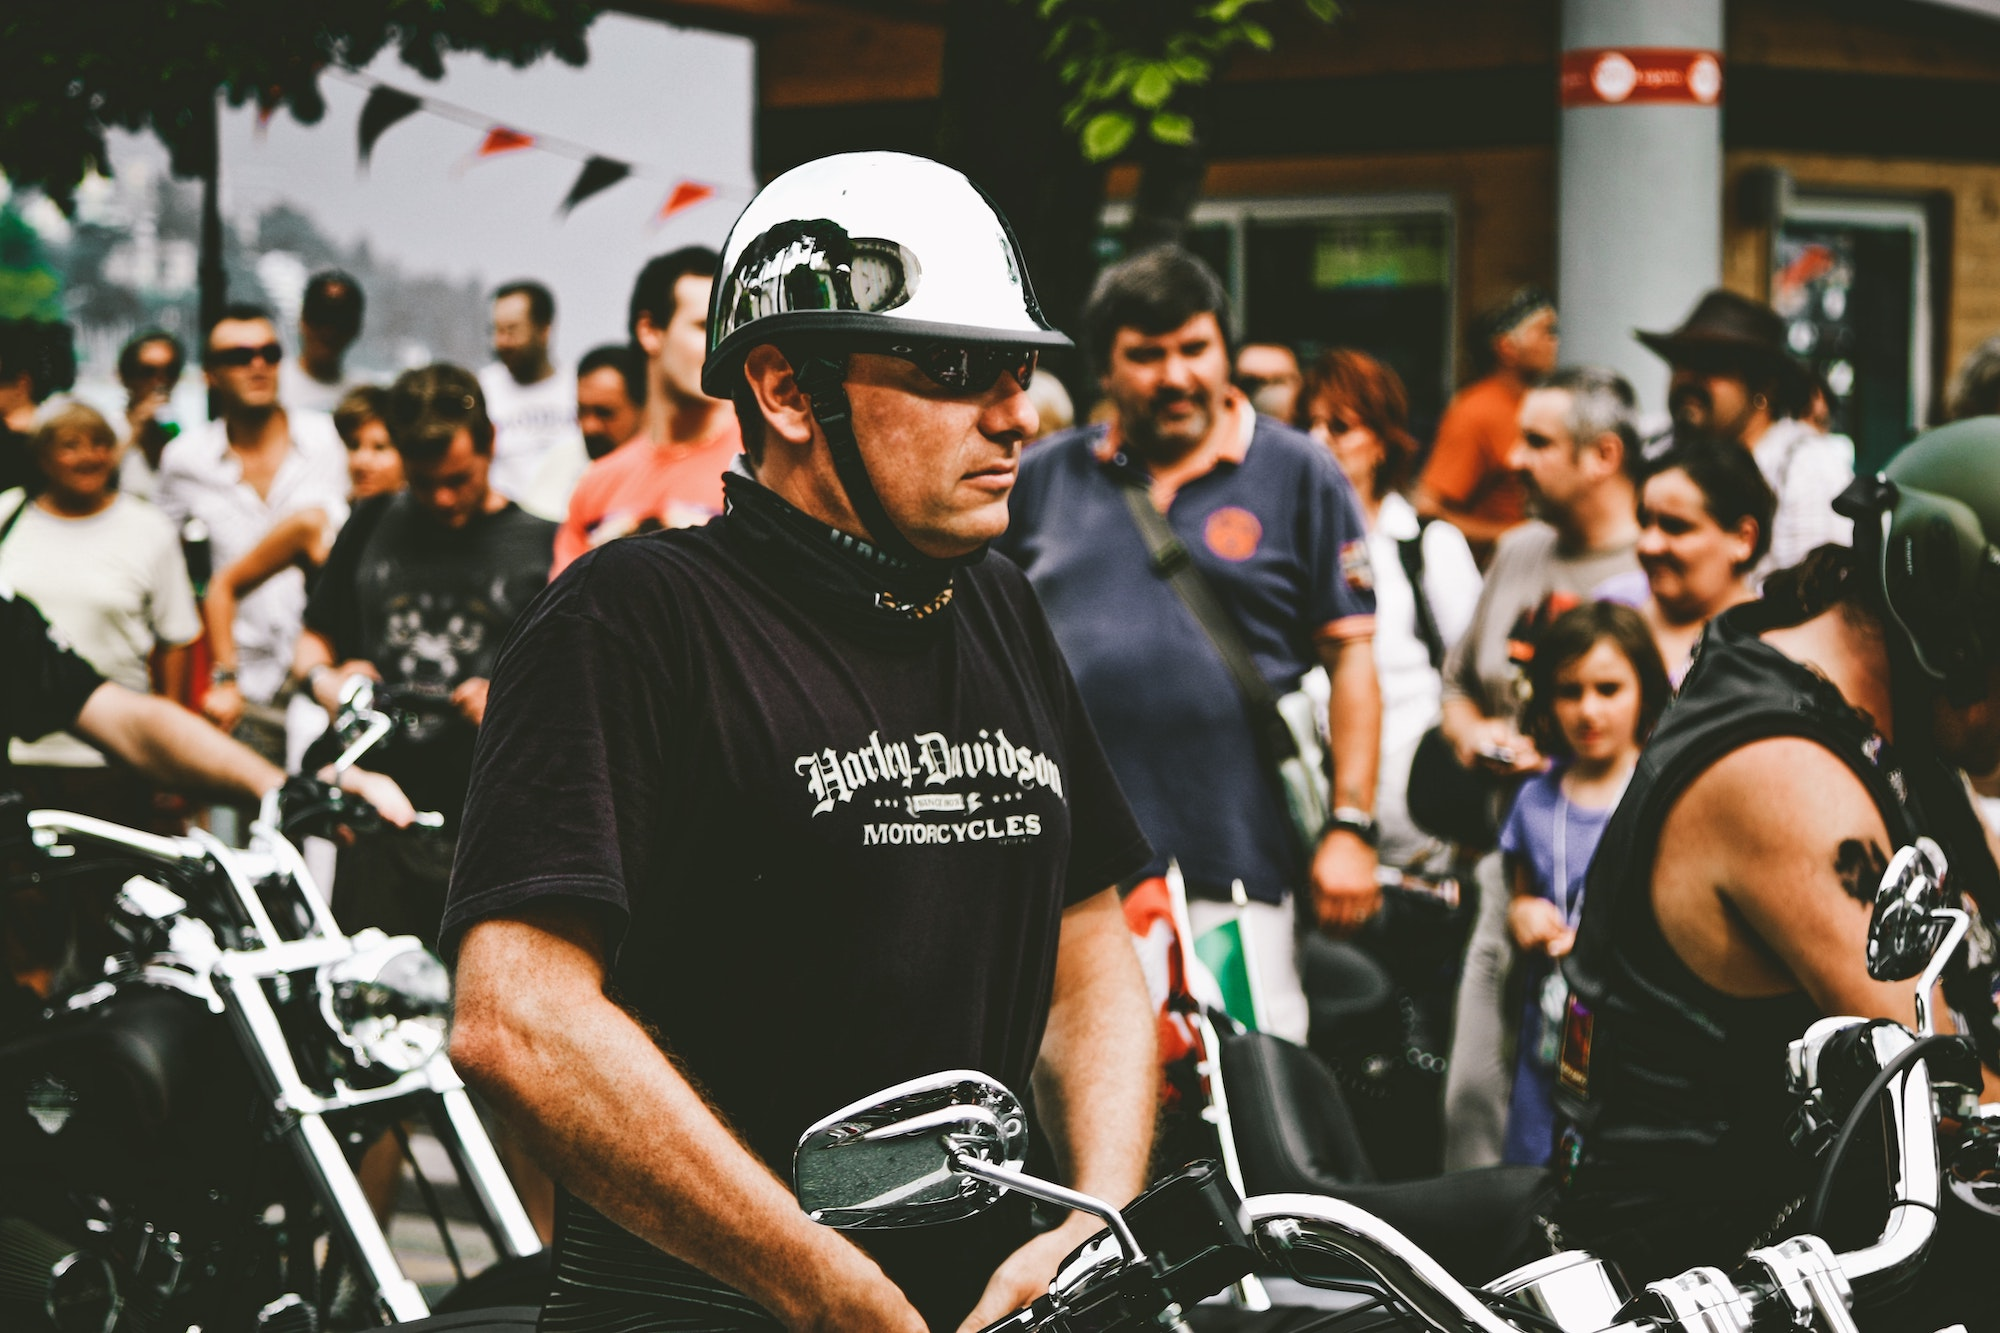 Man wearing a Harley-Davidson motorcycle shirt